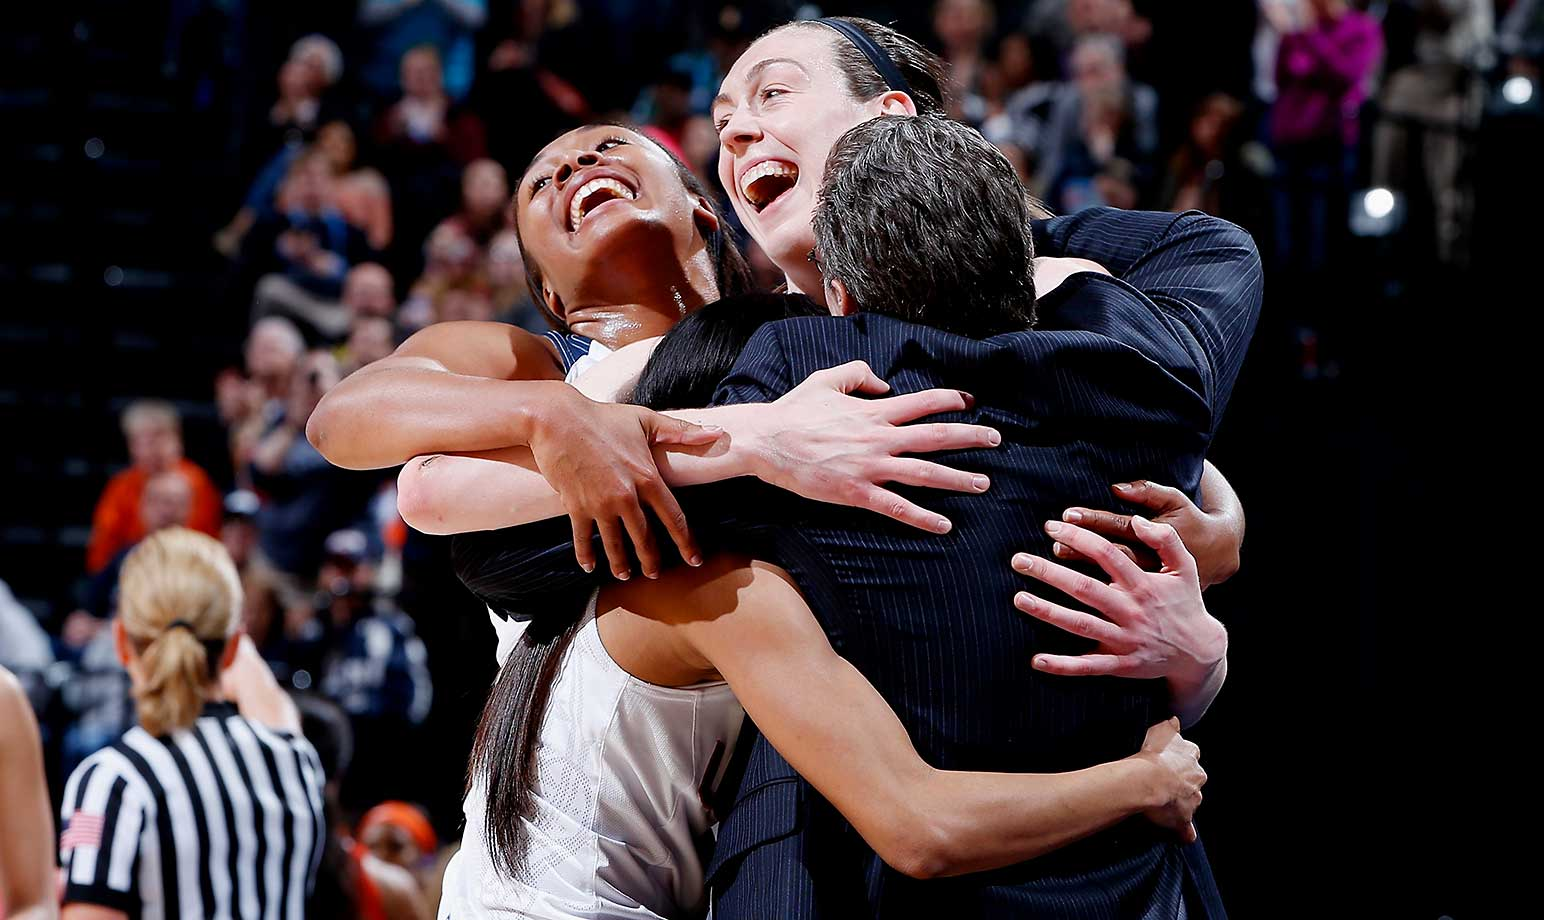 Here are some of the images that caught our eye on a night when the Connecticut women won a record fourth consecutive national championship in basketball. Pictured here, Breanna Stewart (30), Morgan Tuck (3), Moriah Jefferson (4) and coach Geno Auriemma embrace as the seniors took the bench in the 82-51 victory over Syracuse.